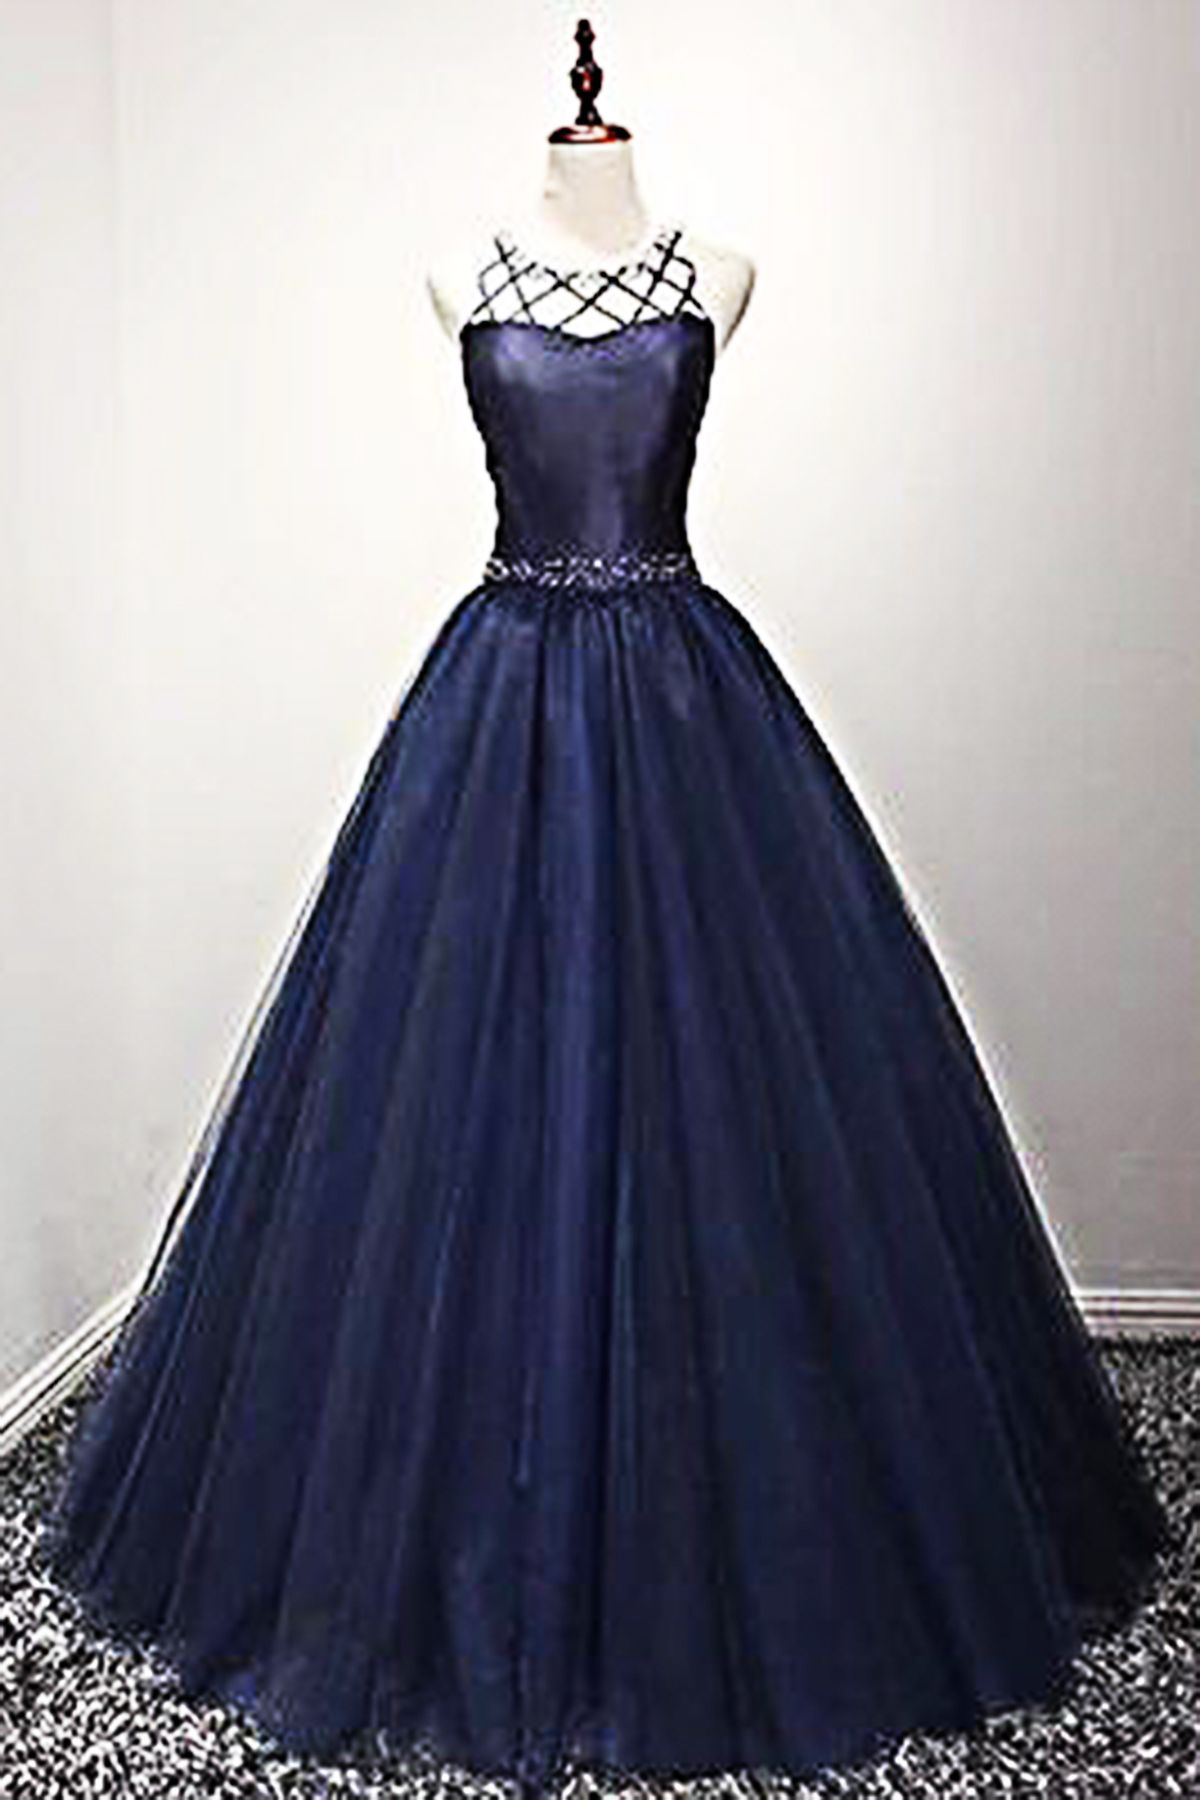 Navy Prom Dress Tulle Prom Dress Unique Long Evening For Teens